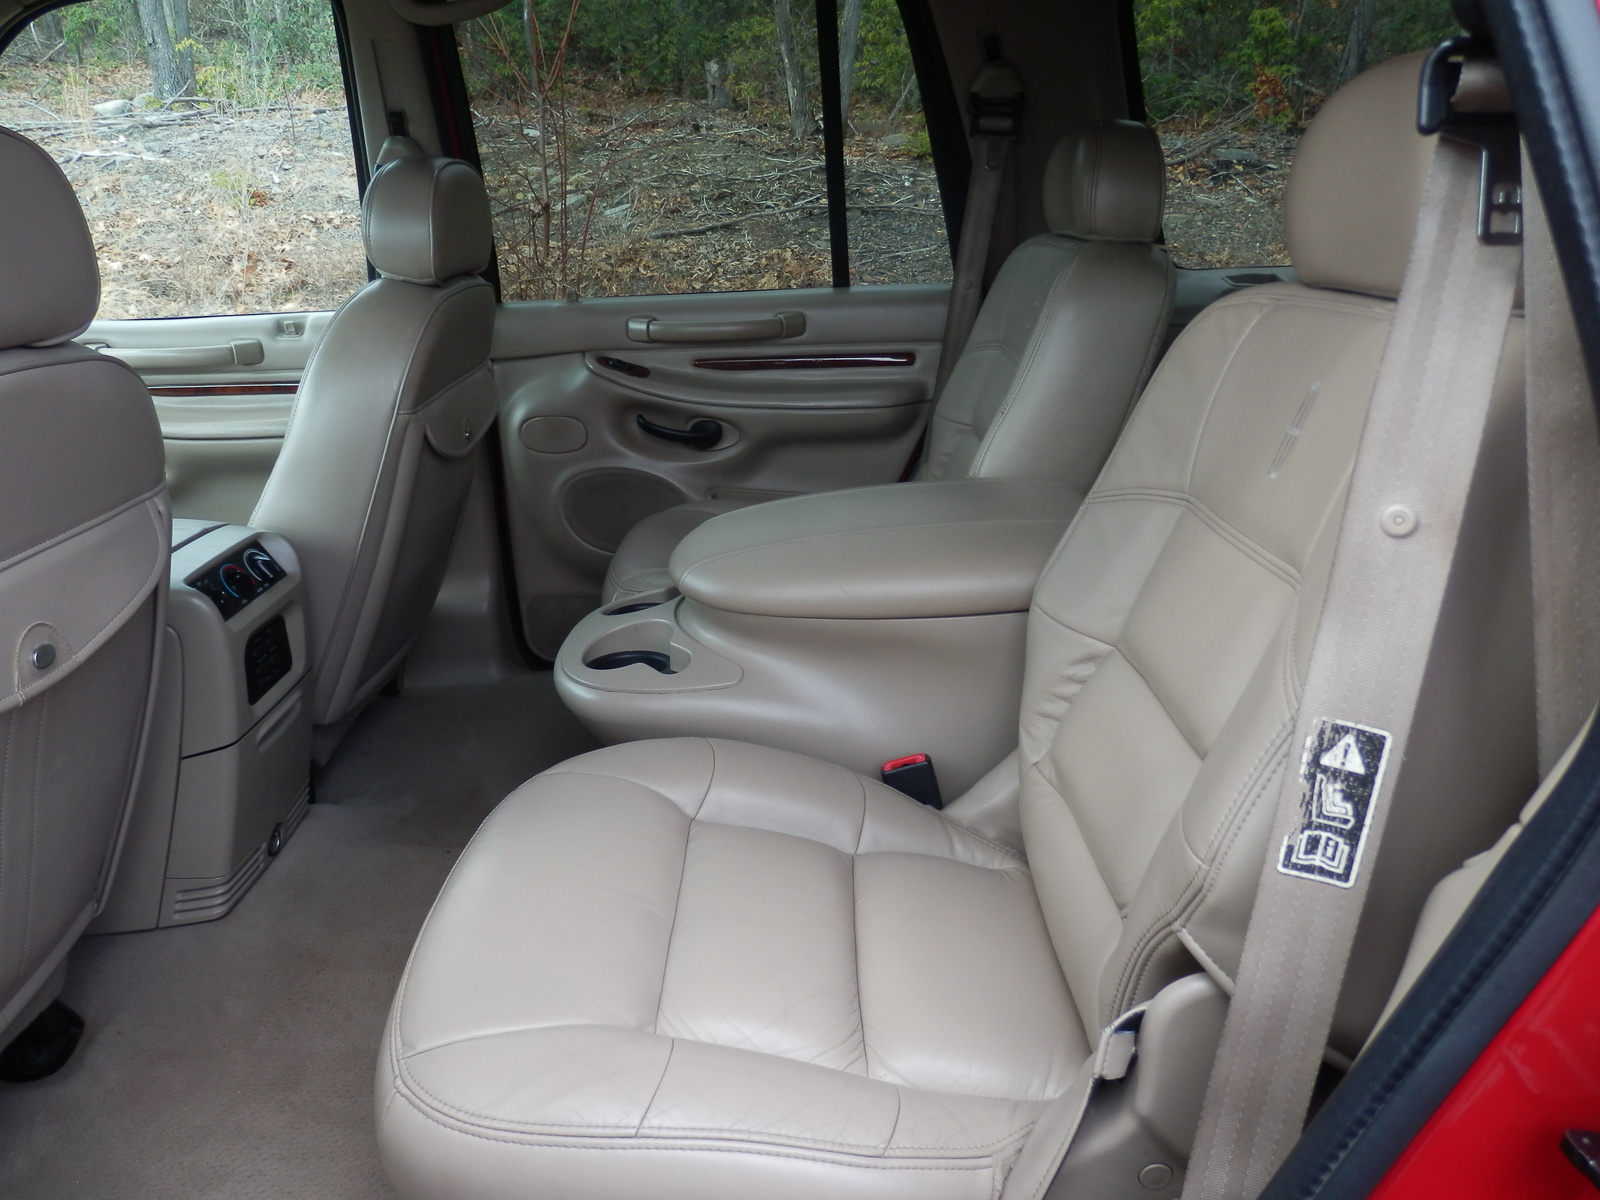 2000 lincoln navigator pictures cargurus 2000 lincoln navigator interior